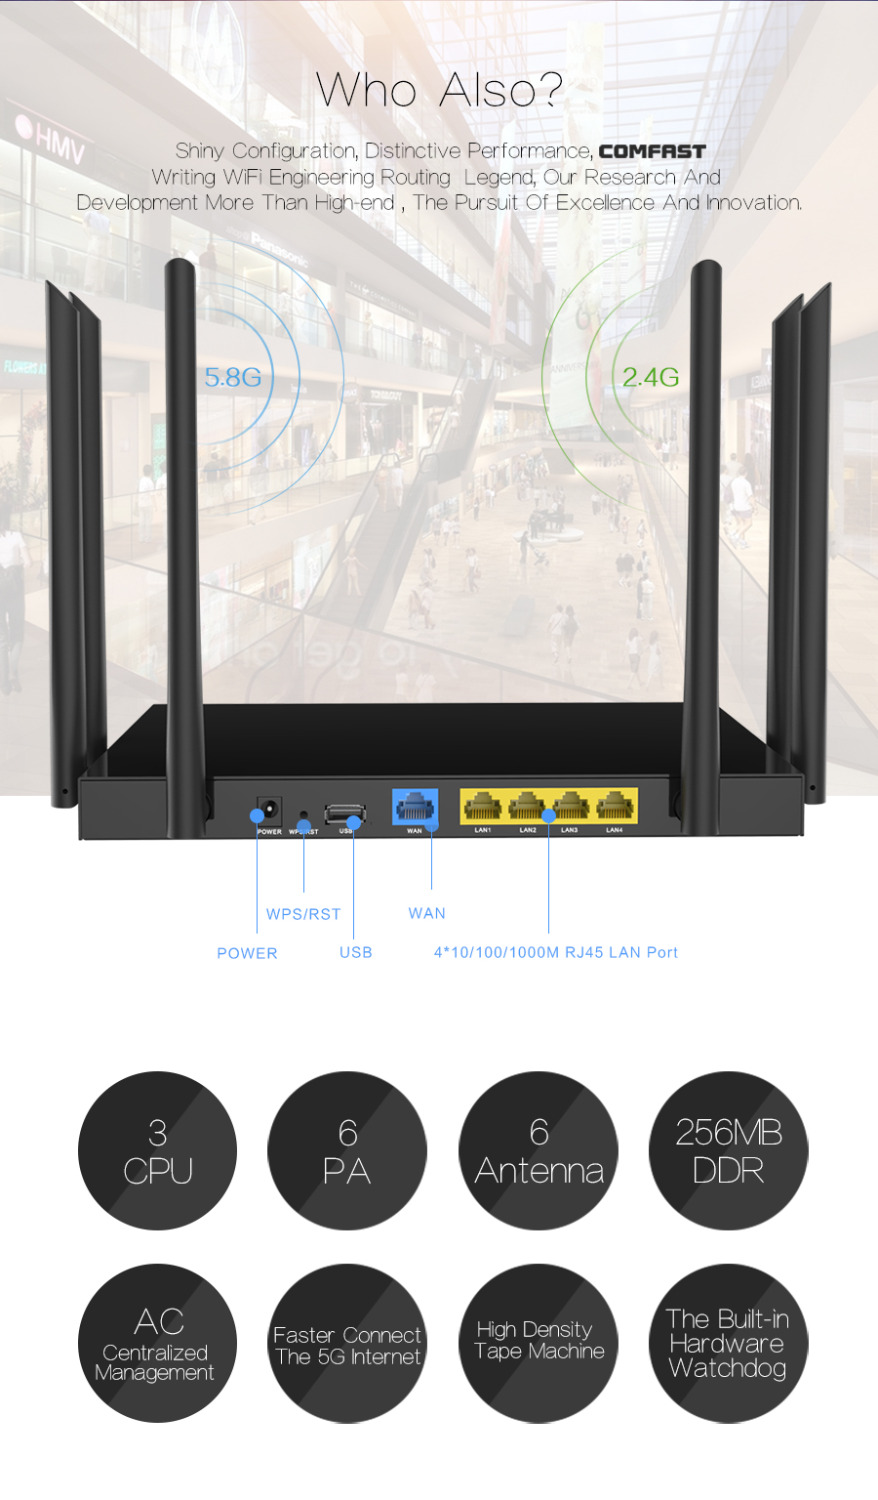 Comfast WR650AC 802.11 AC Up 1750Mbps Dual Band 2.4 + 5 GHz Gigabit WiFi Router Wi Fi Repeater 4 lan 1 wan Open dd wrt router 1750mbps 2 4g 5 8g dual band ac wifi router enginering ac manage1wan 4lan 802 11ac access point wi fi router comfast cf wr650ac